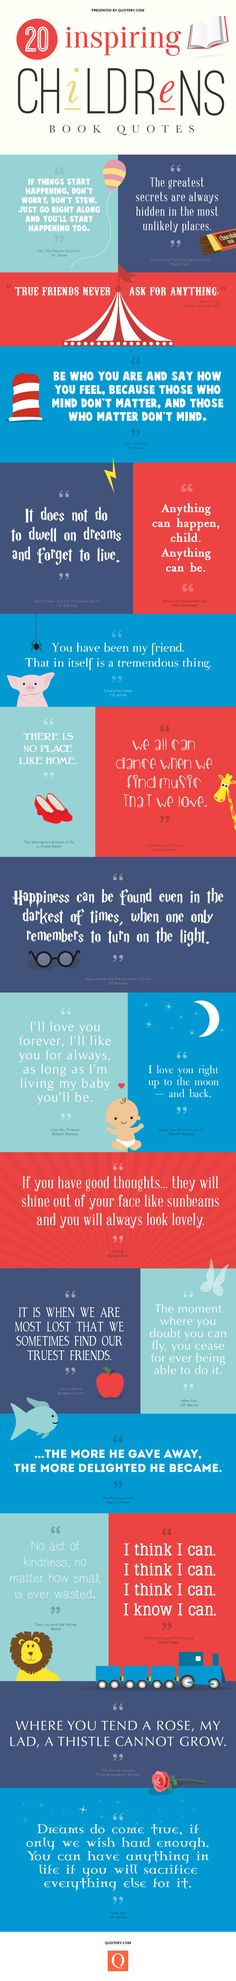 20 Inspiring Children's Book Quotes- Love this!